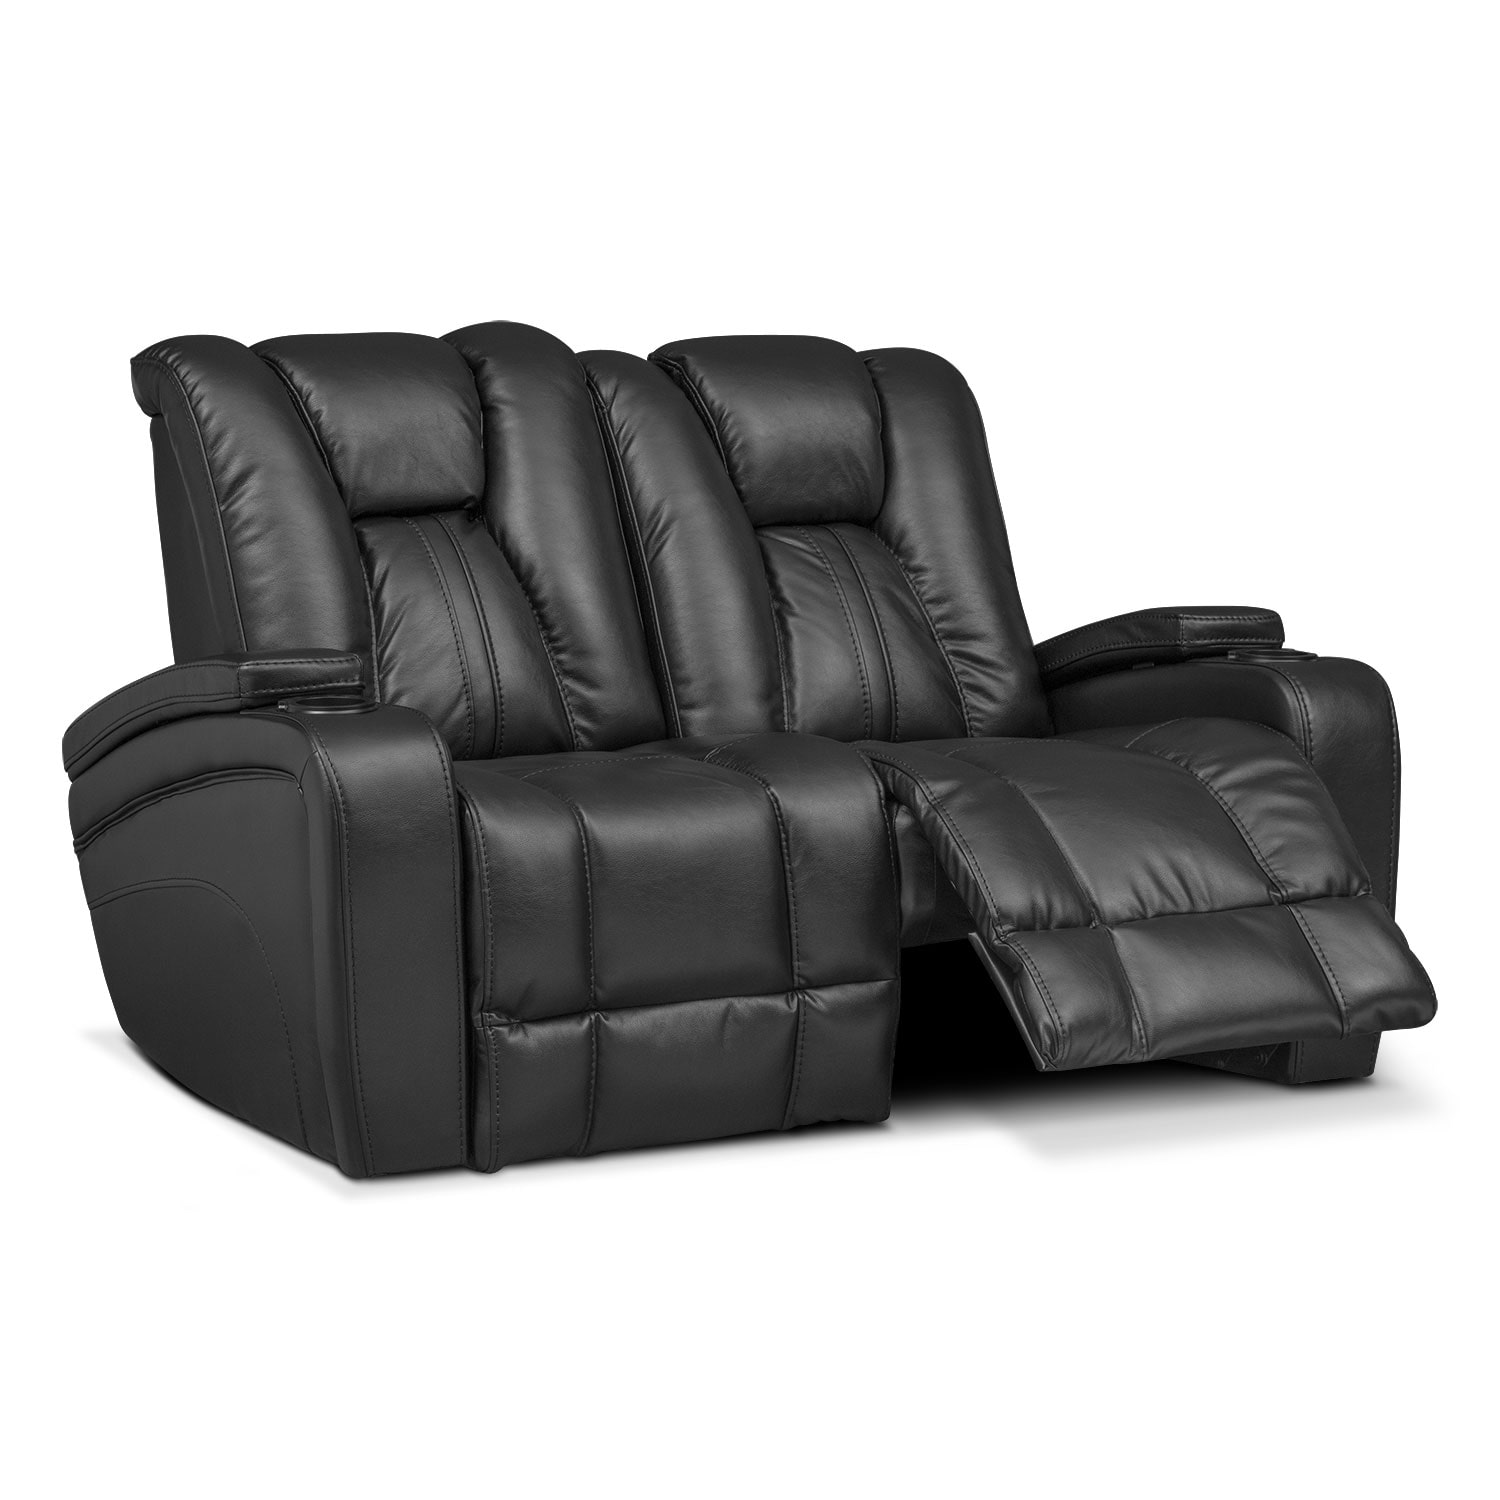 Pulsar Dual Power Reclining Loveseat Black Value City Furniture